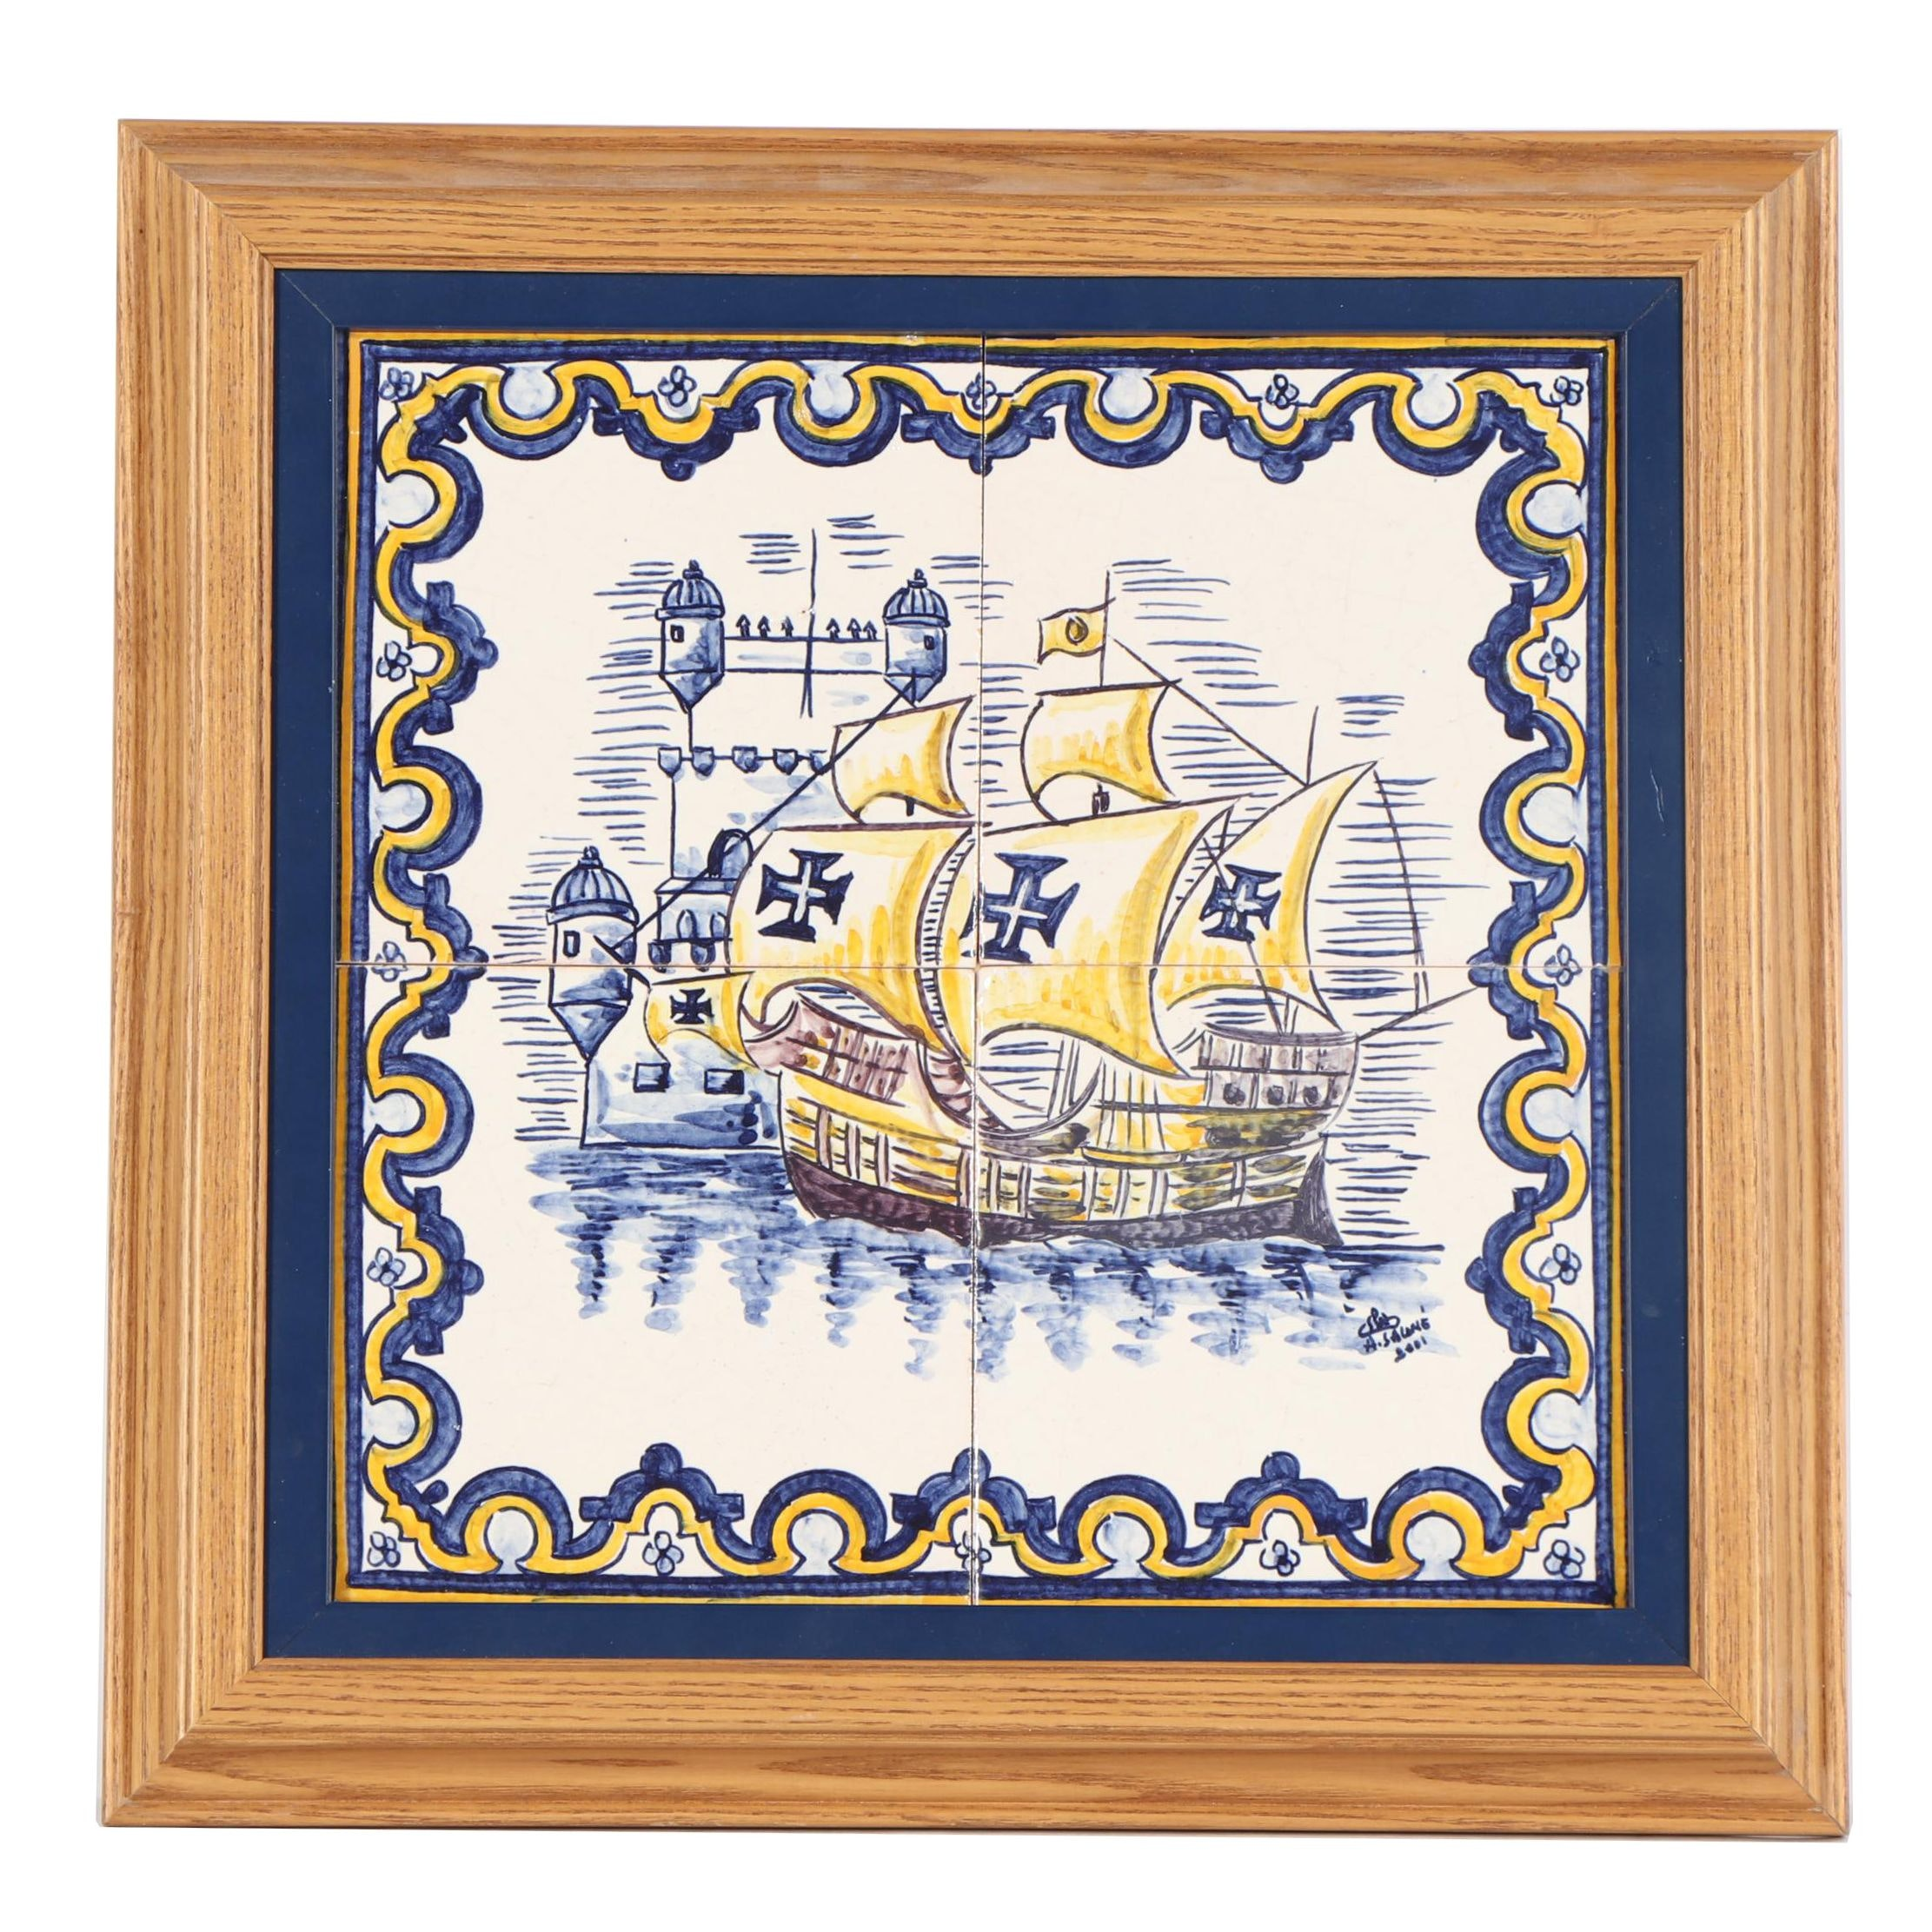 Hand-Painted Ceramic Tile with Nautical Motif